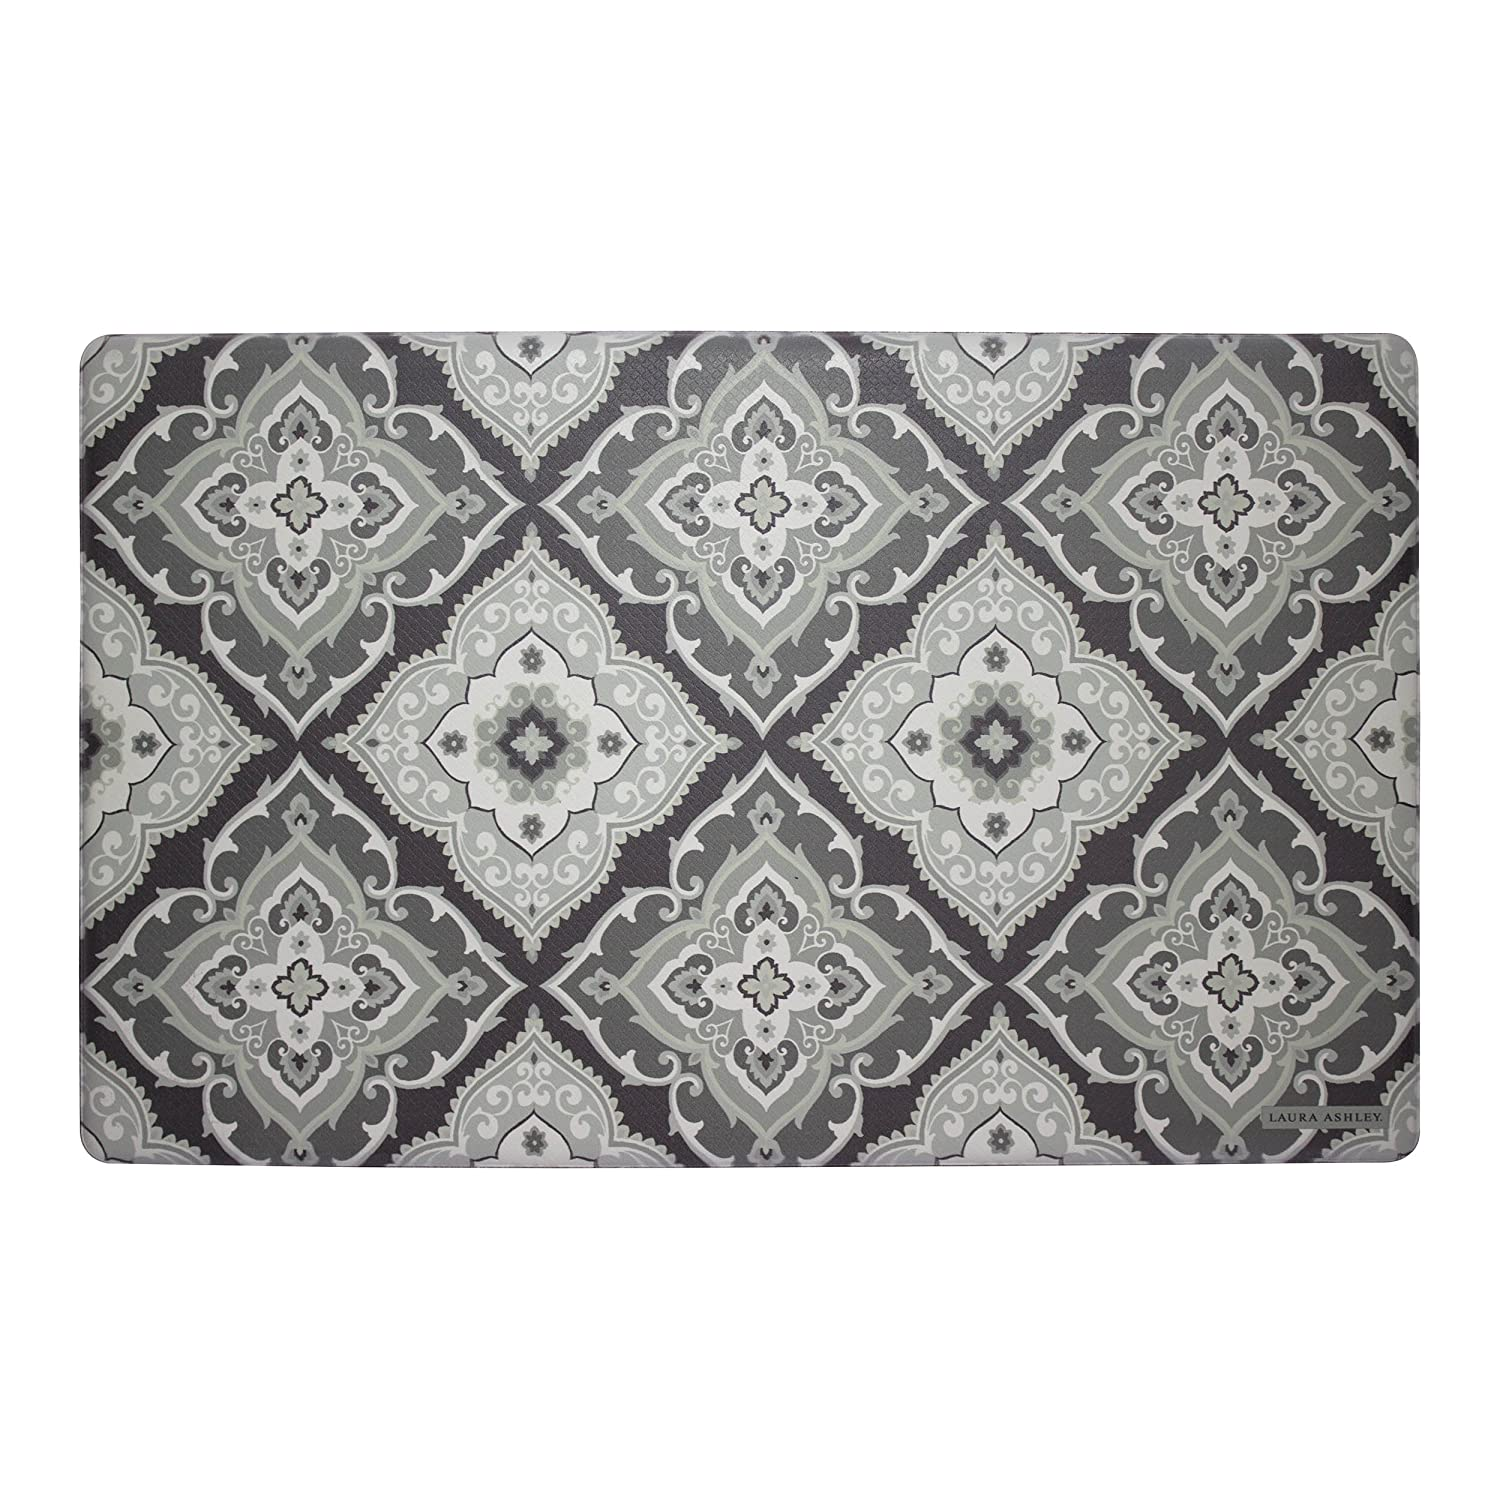 mat regarding cushioned memory mats and foam rugs floor proportions x decorative kitchen